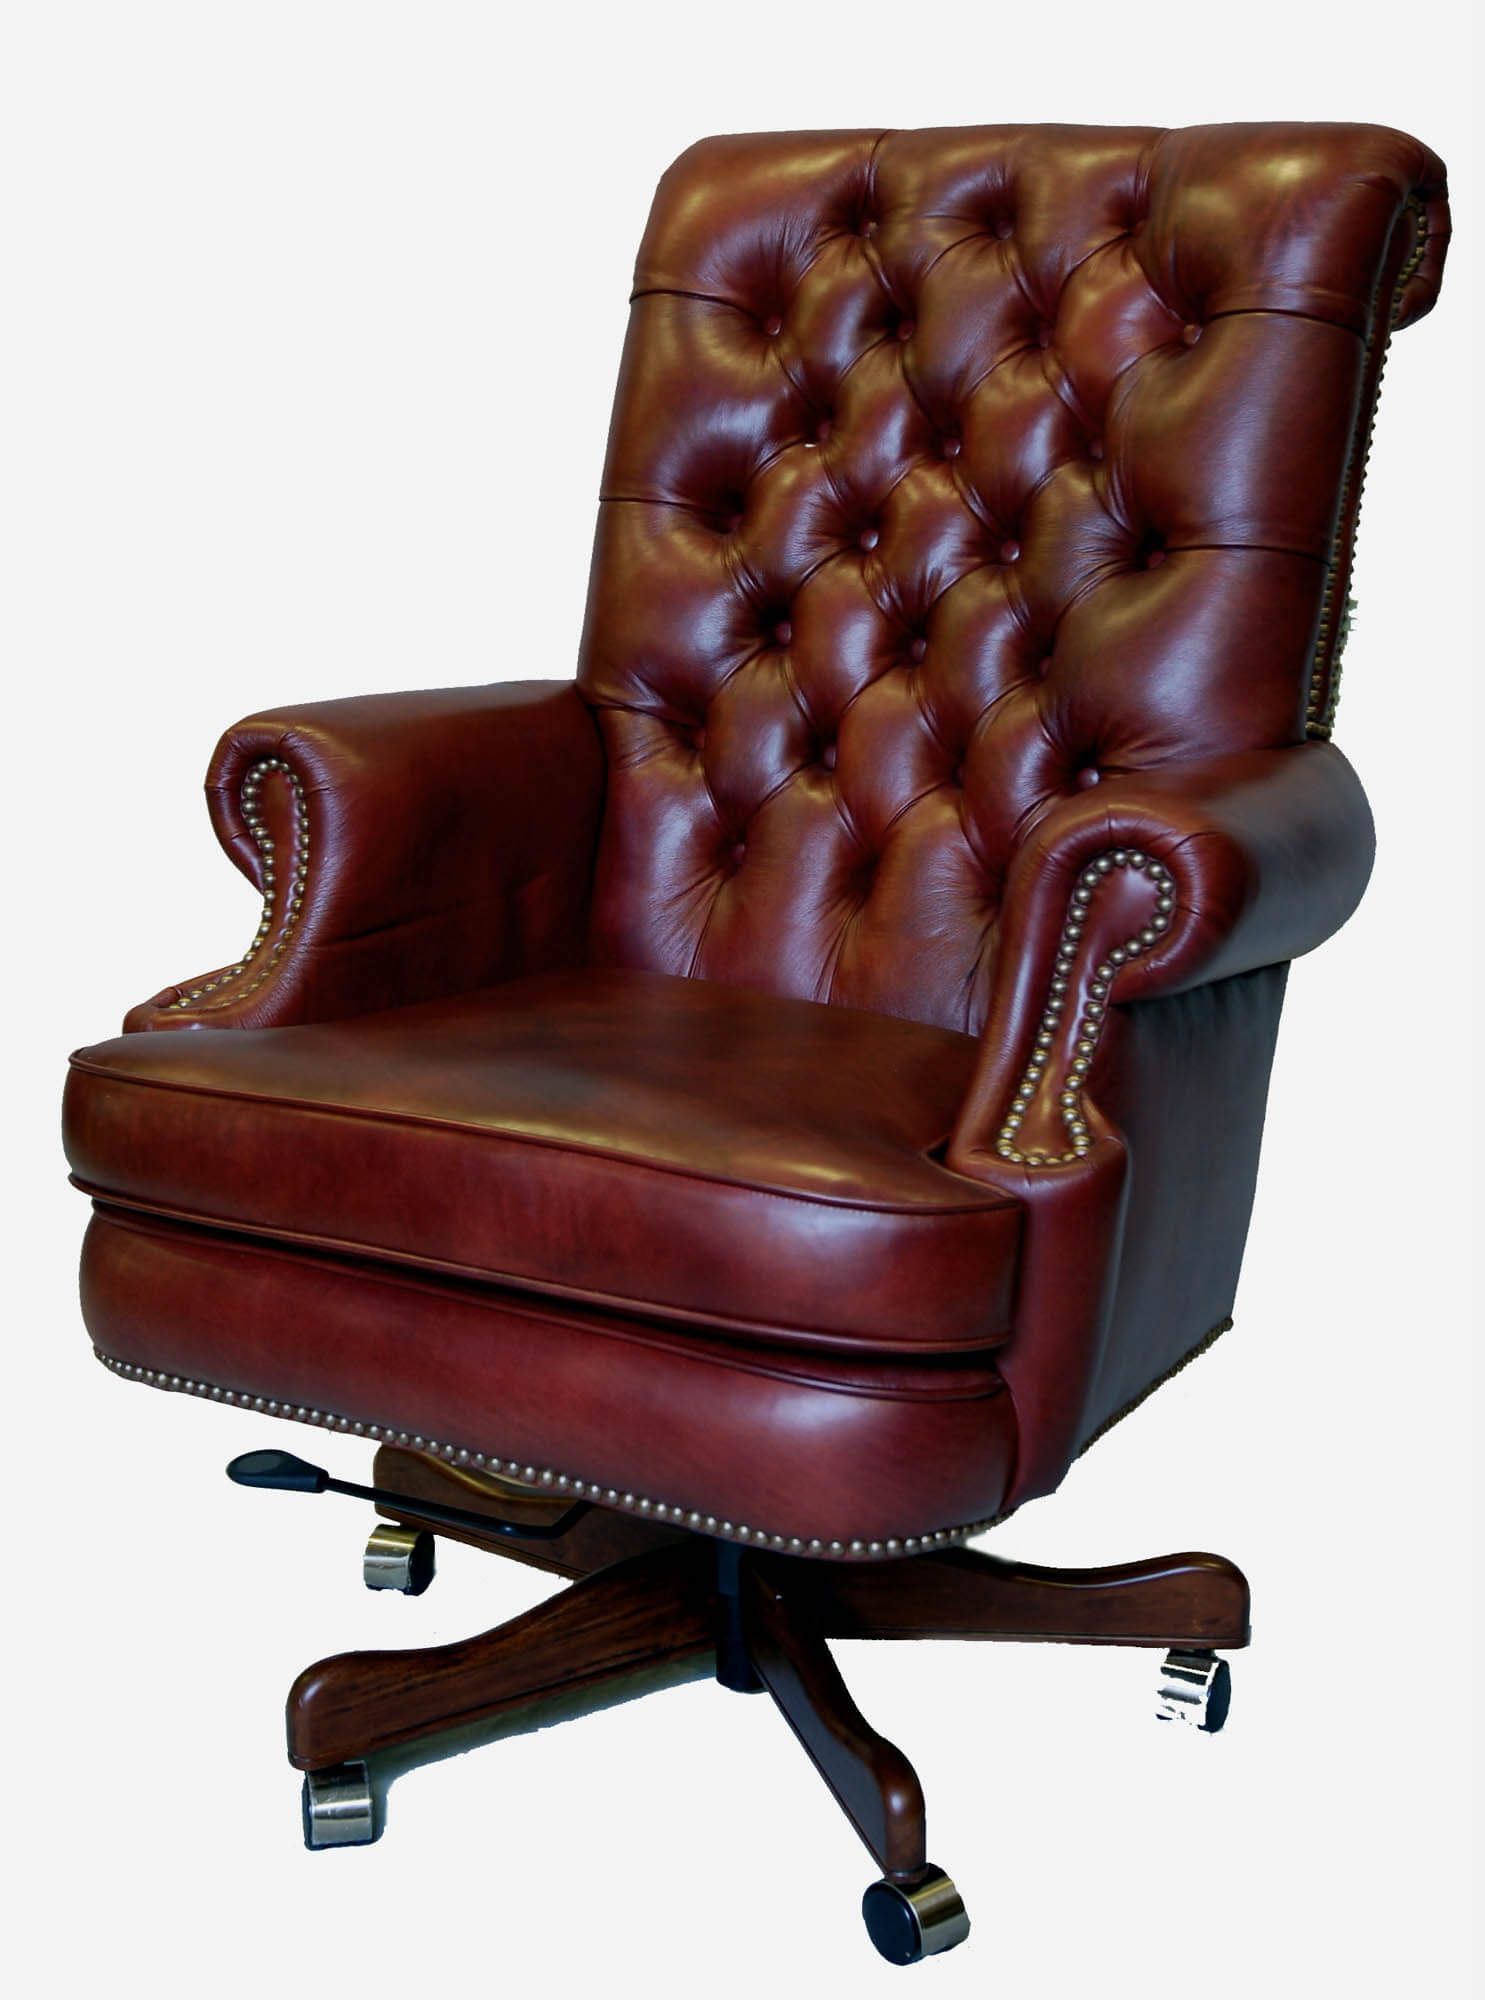 Executive Chair May Look With A Leather